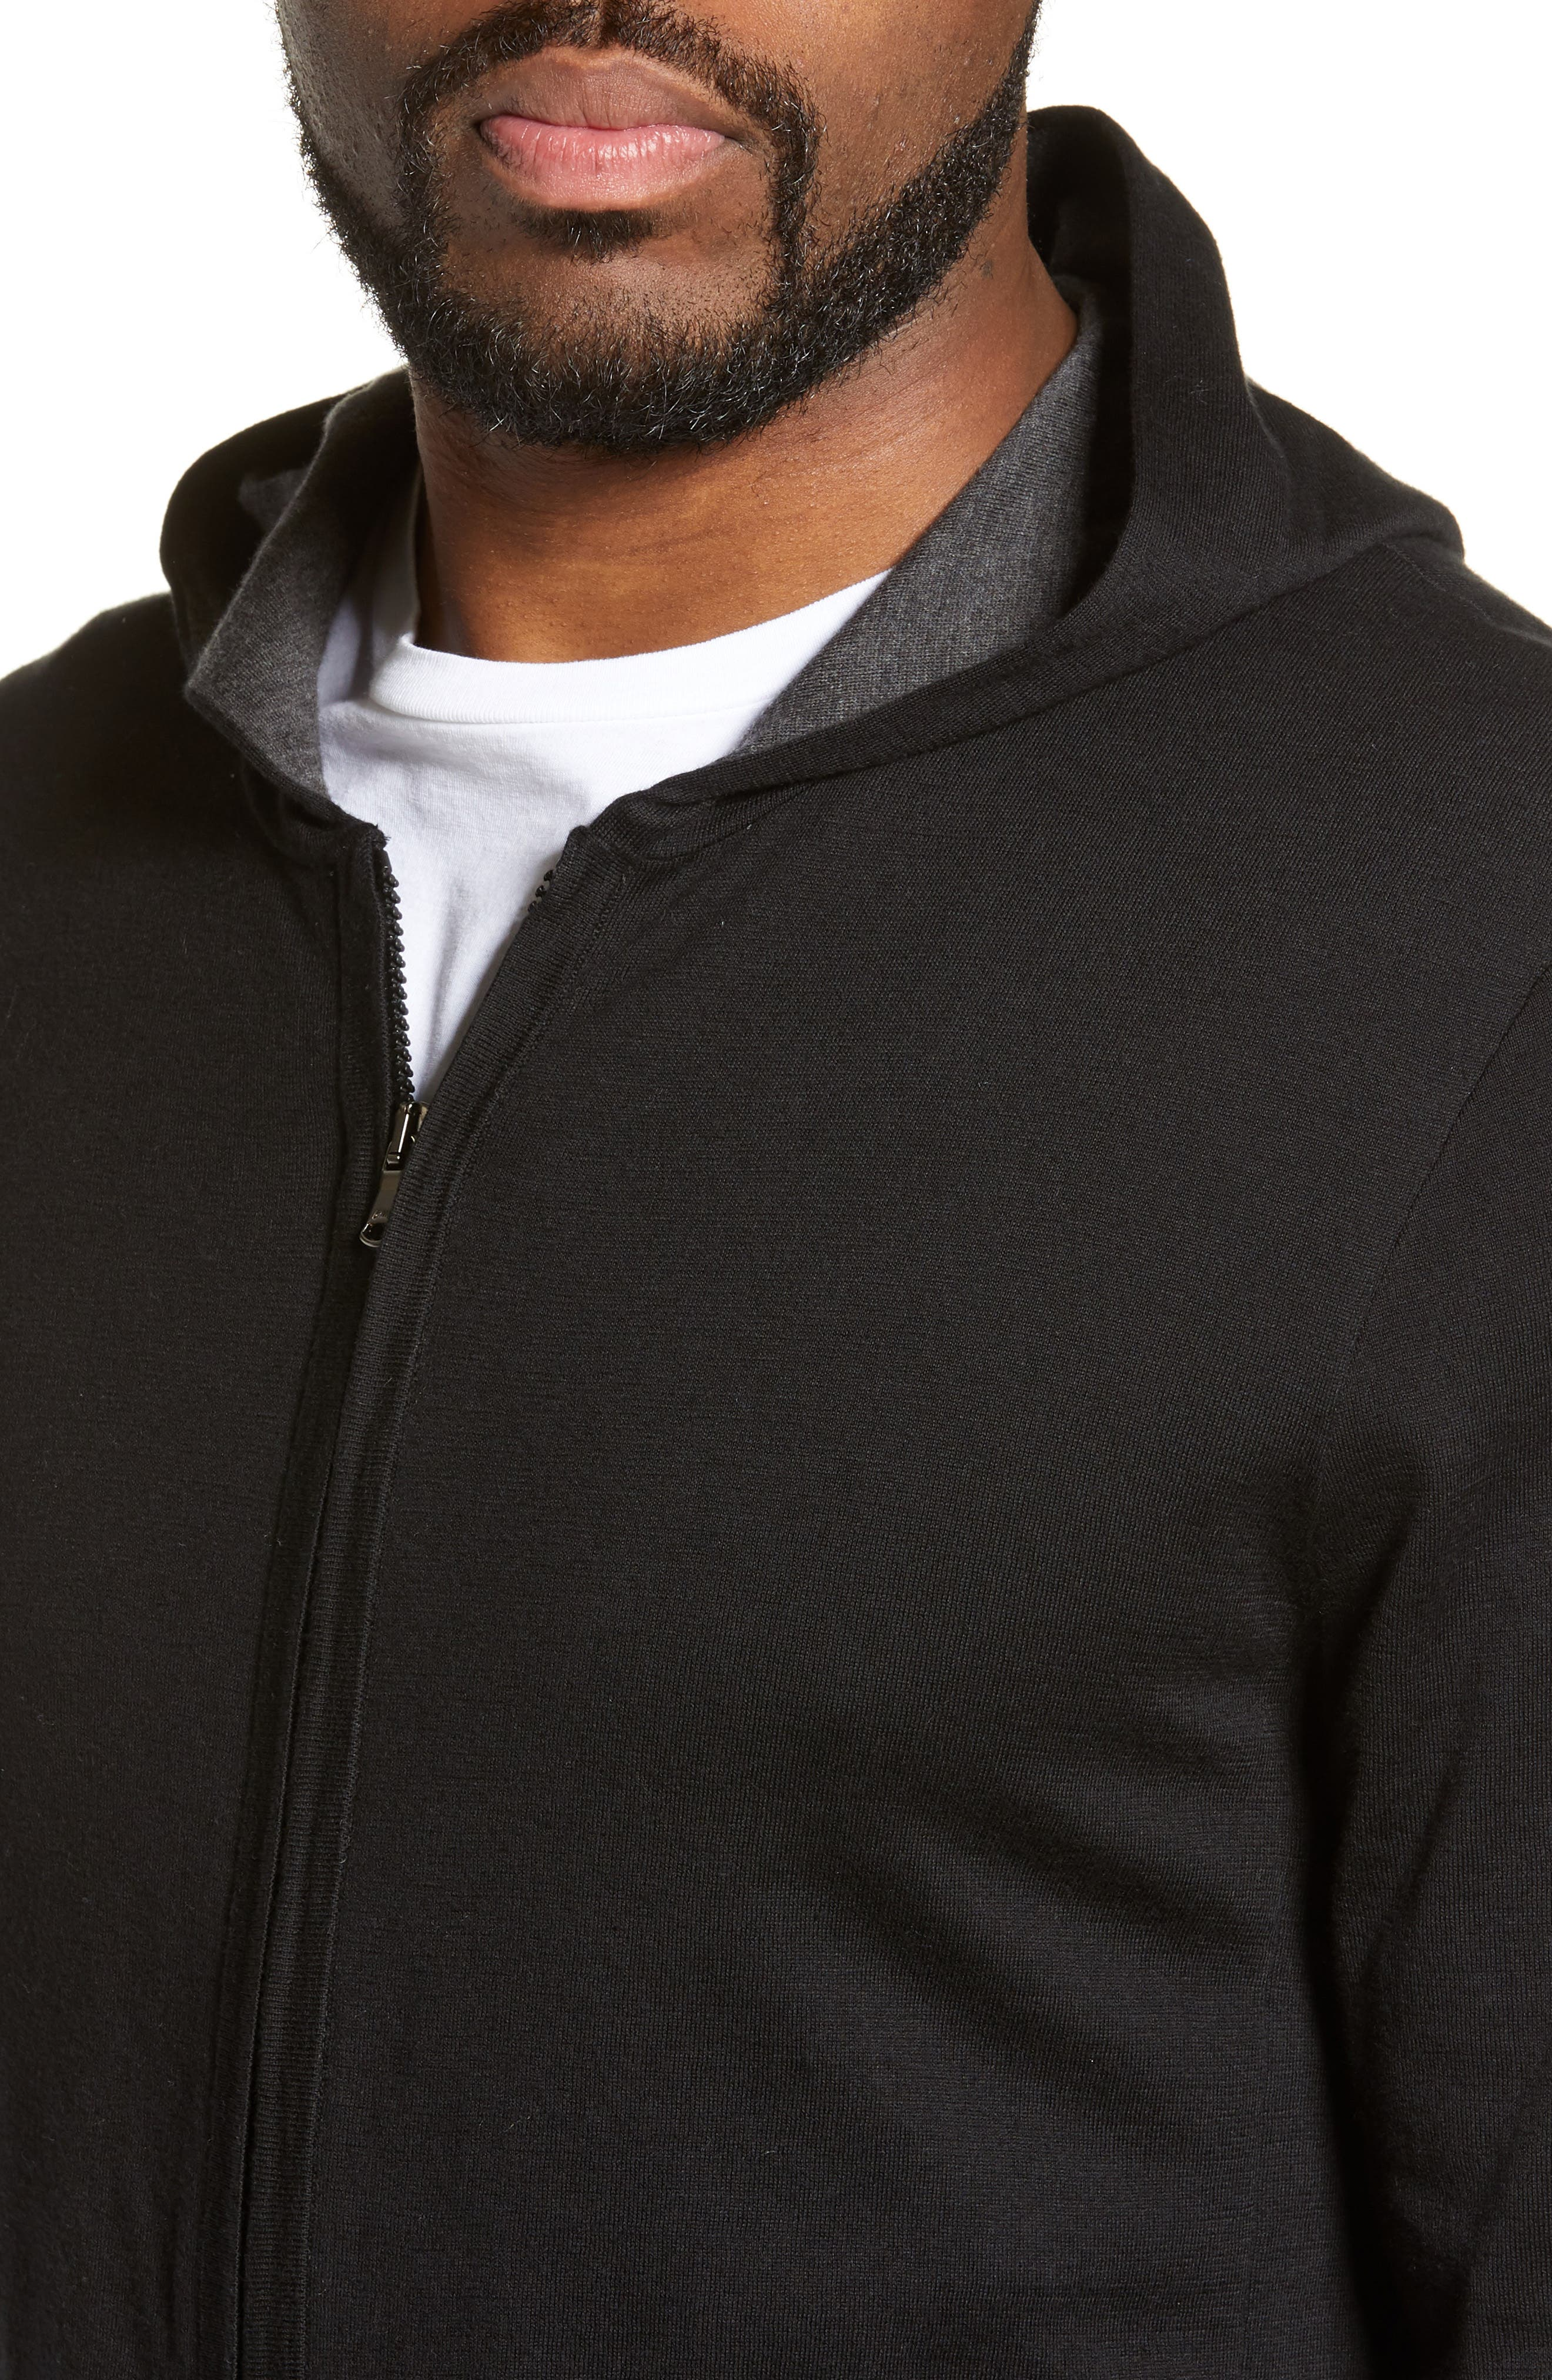 Double Layer Full Zip Hoodie,                             Alternate thumbnail 4, color,                             BLACK/ HEATHER CHARCOAL